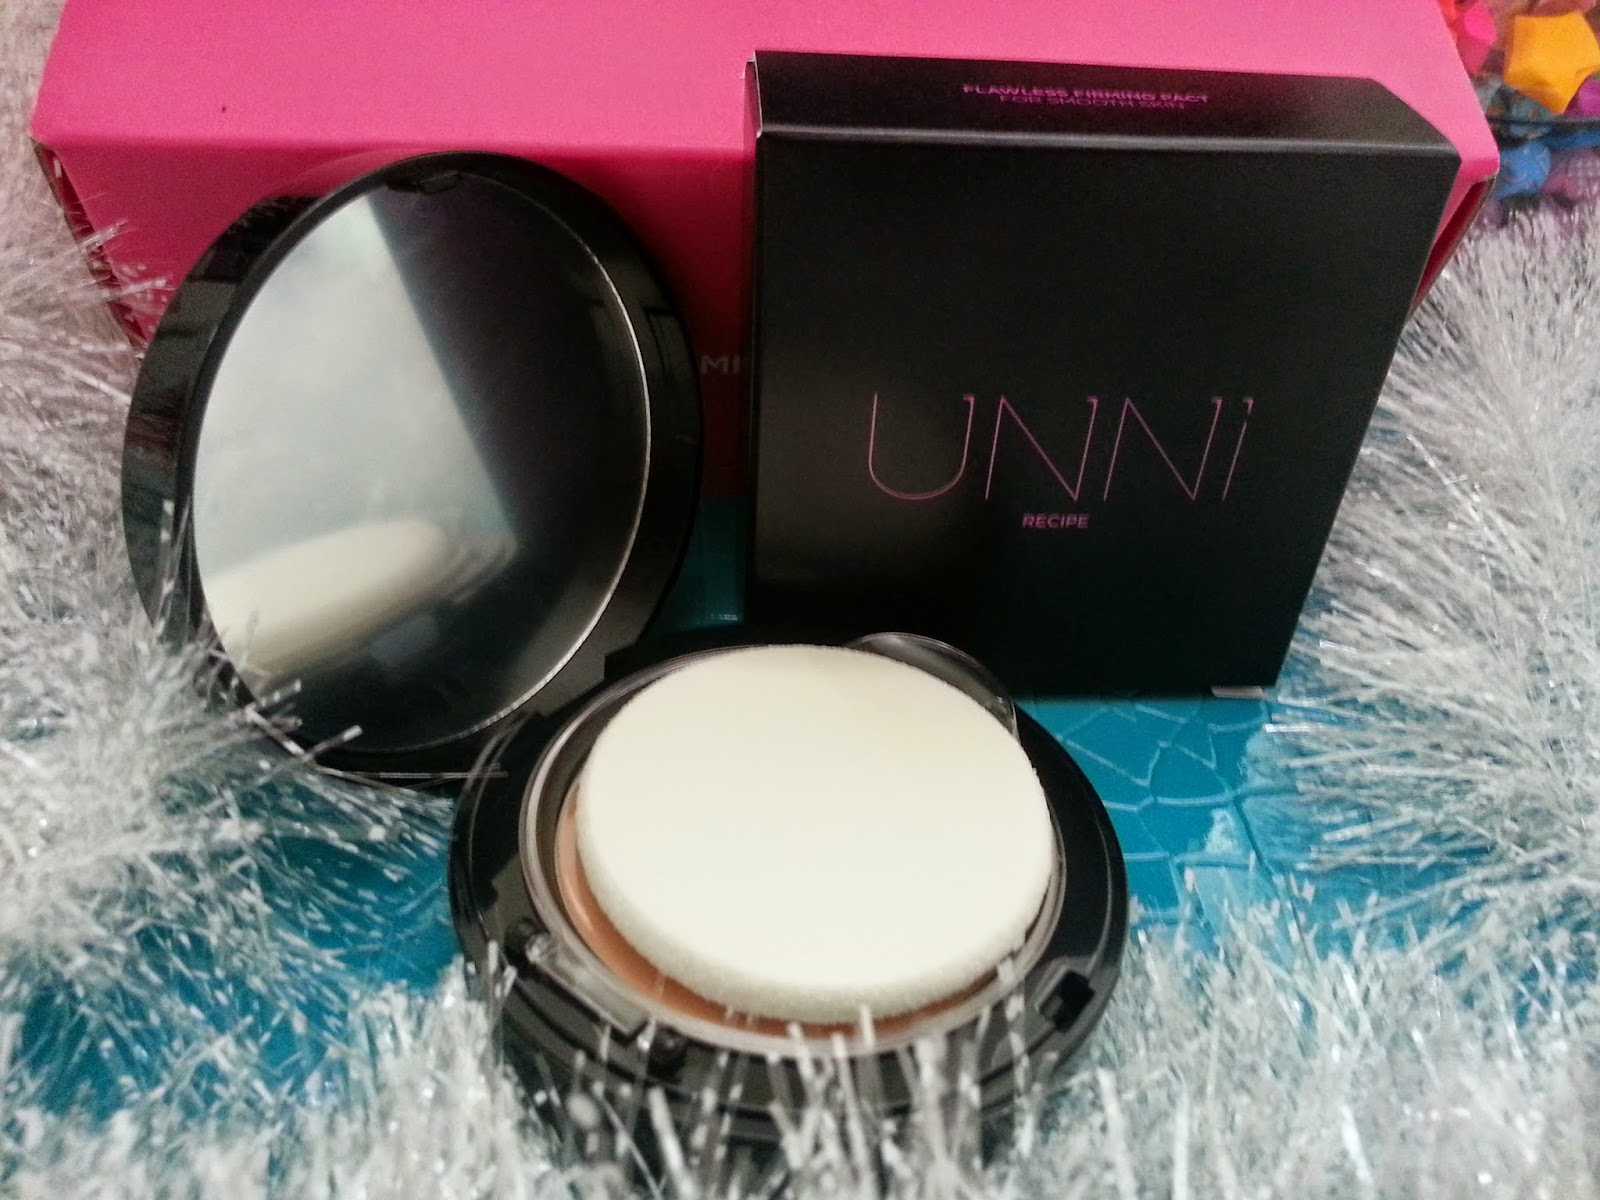 Unni Recipe Makes Your Skin Smooth Firming Pact